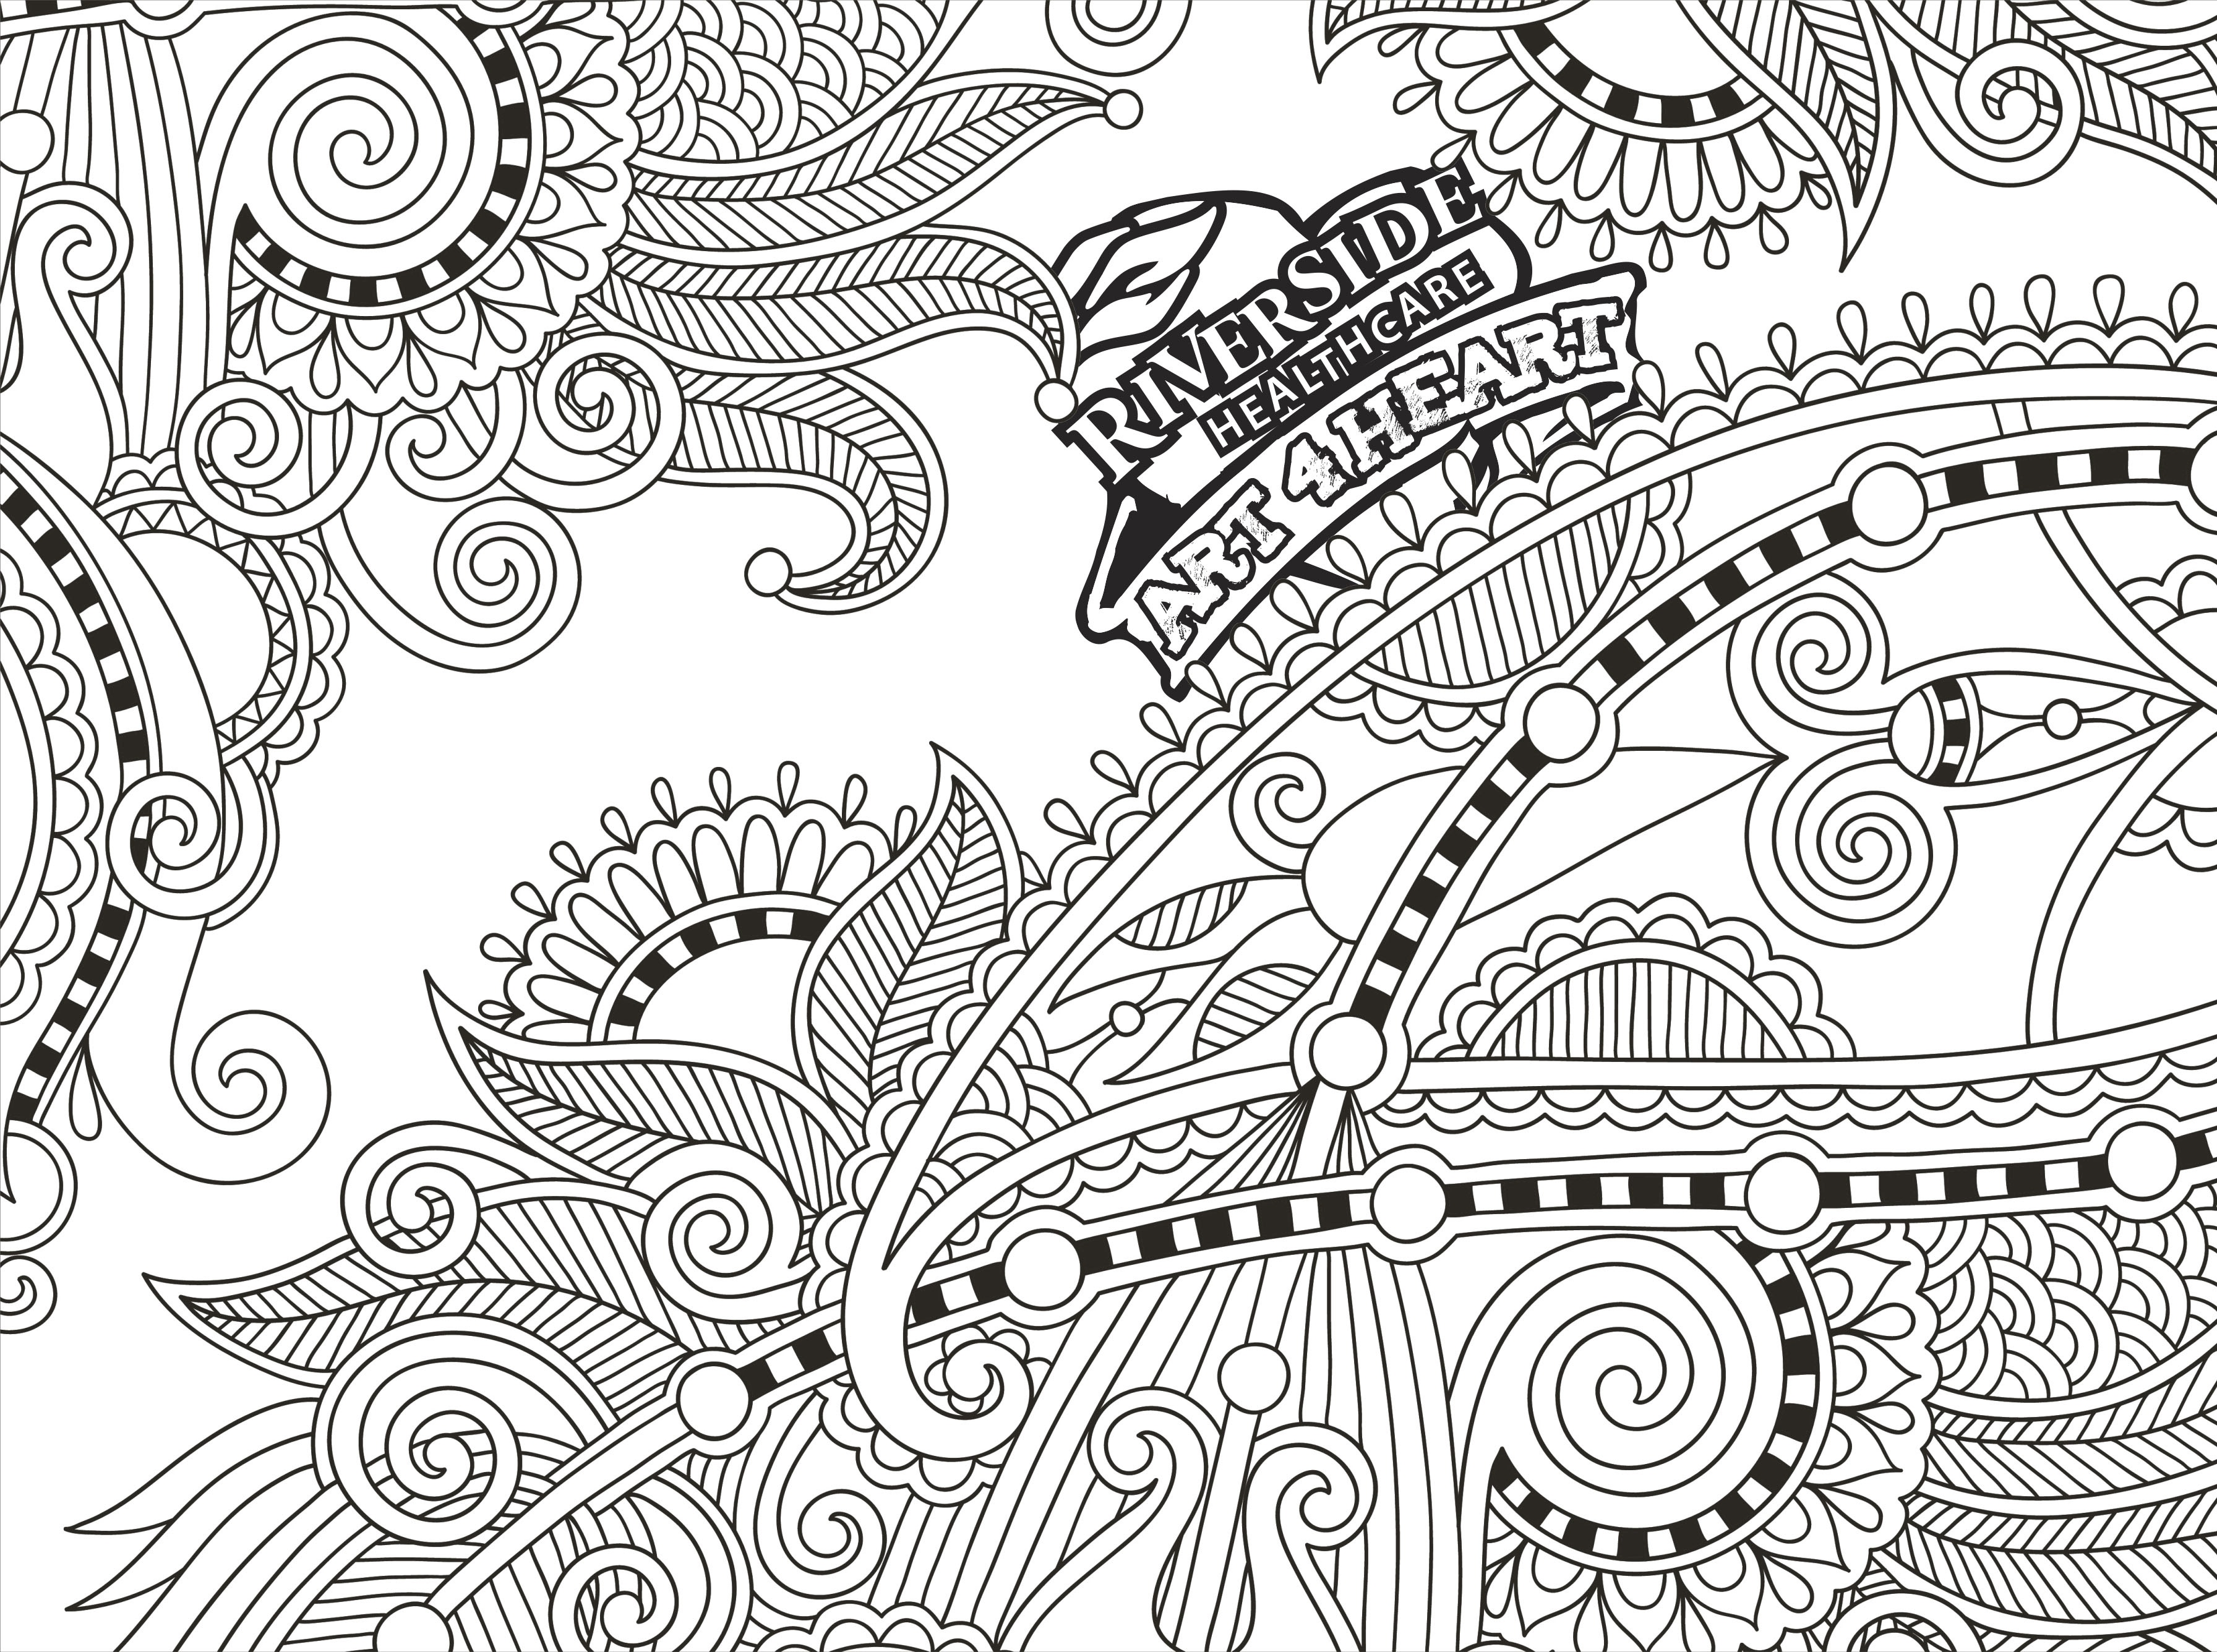 Coloring Ideas : Coloring Ideas Printable Pages Healthcurrents - Free Printable Coloring Book Pages For Adults